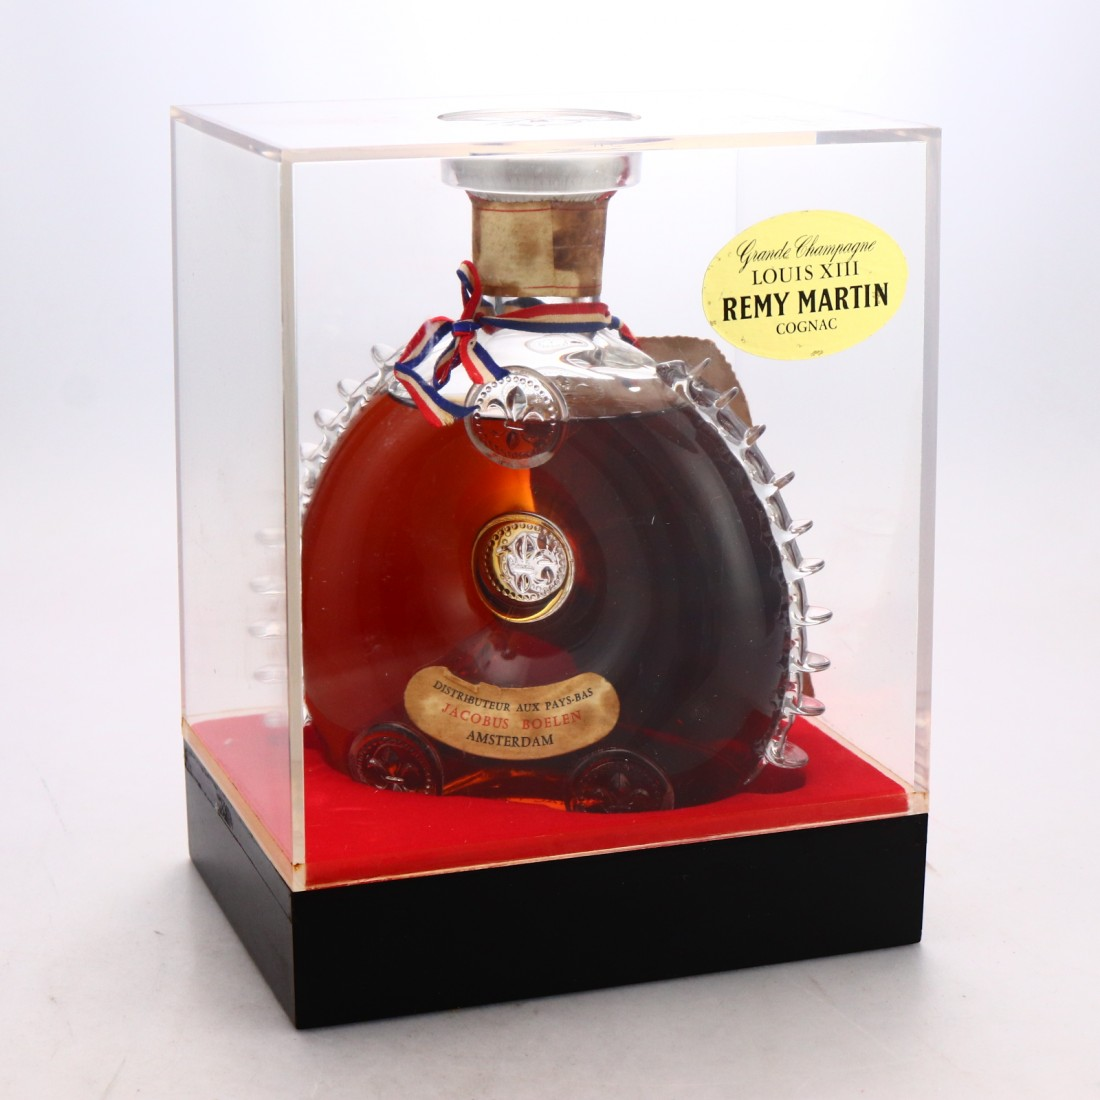 Remy Martin Louis XIII Very Old Cognac 1960s / Dutch Import